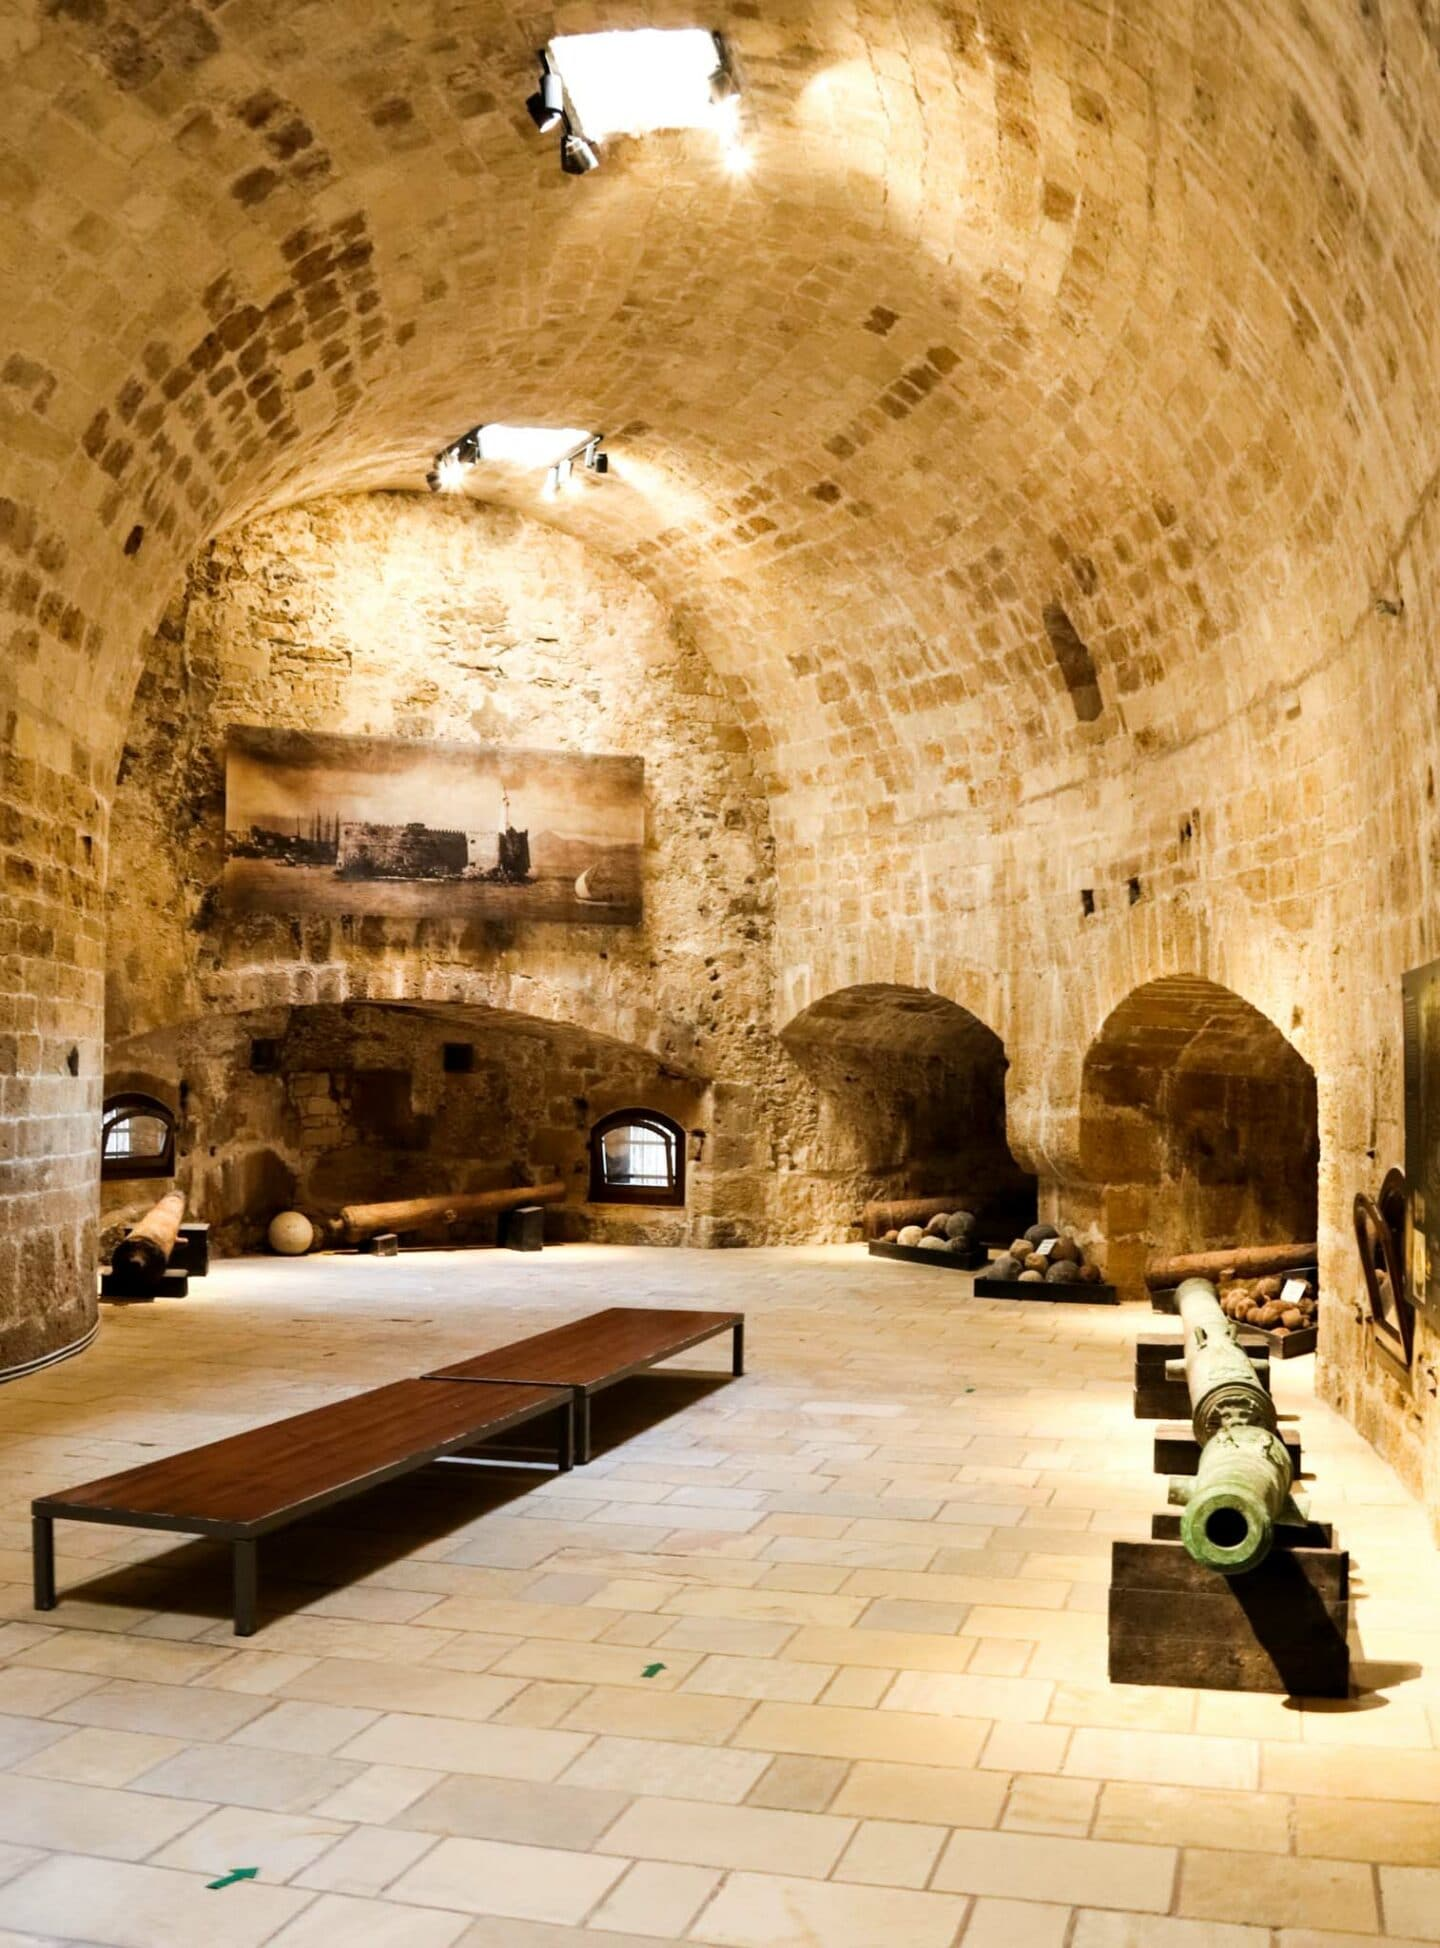 Inside the Koules Fortress. The fort is home to exhibits on the Venetian occupation of Heraklion with canons and canon balls which were recovered from the ocean.